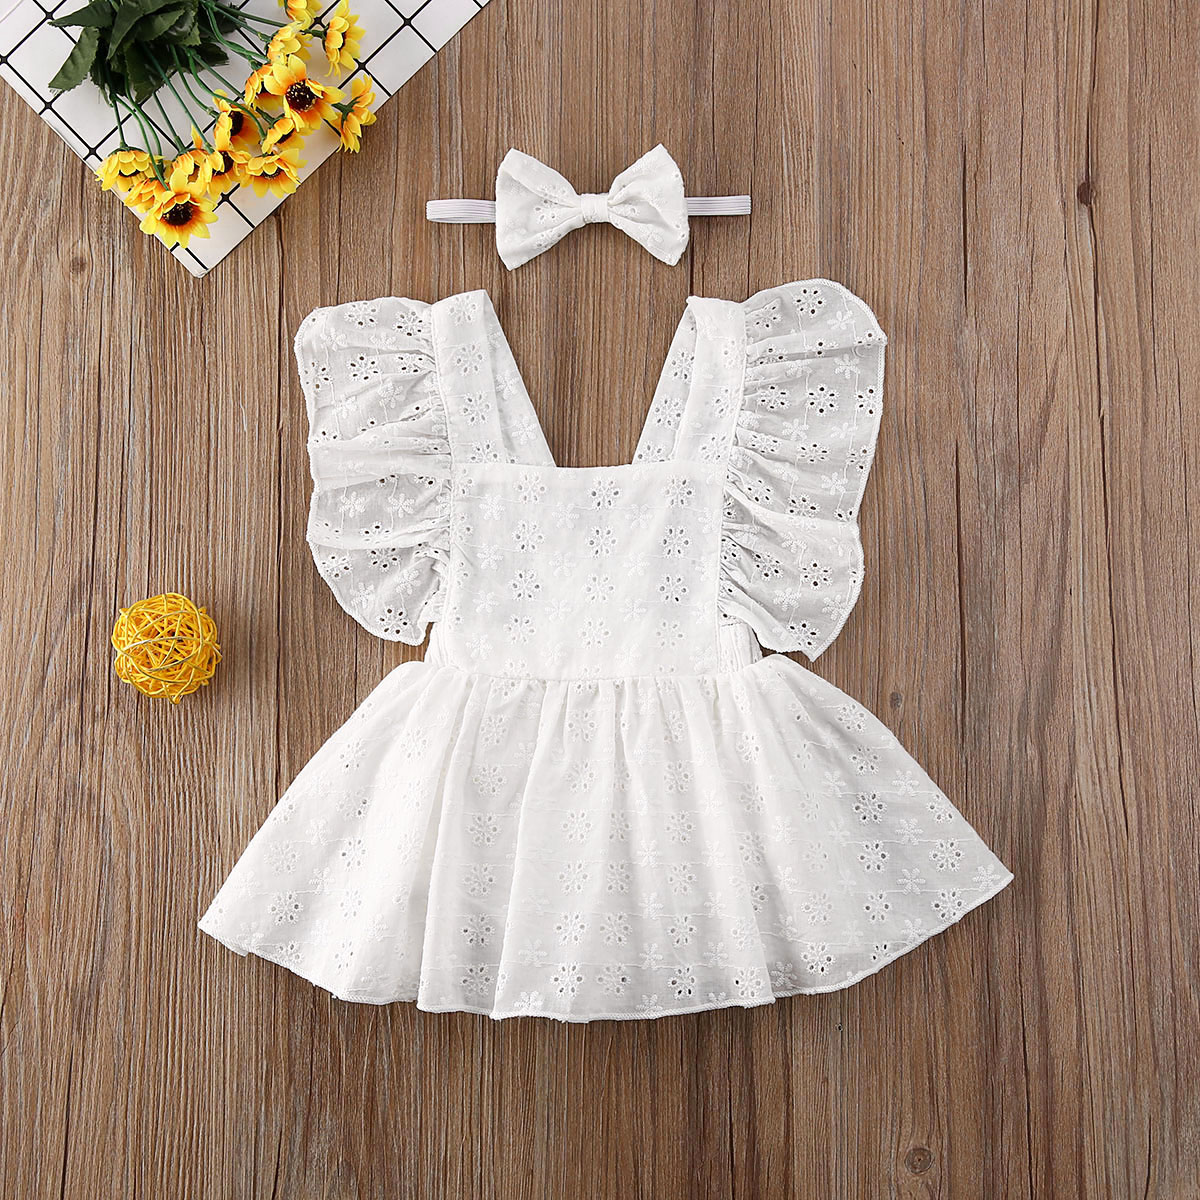 Pudcoco Newborn Baby Girl Clothes Solid Color Sleeveless Flower Ruffle Romper Dress Headband 2Pcs Outfits Cotton Clothes Set